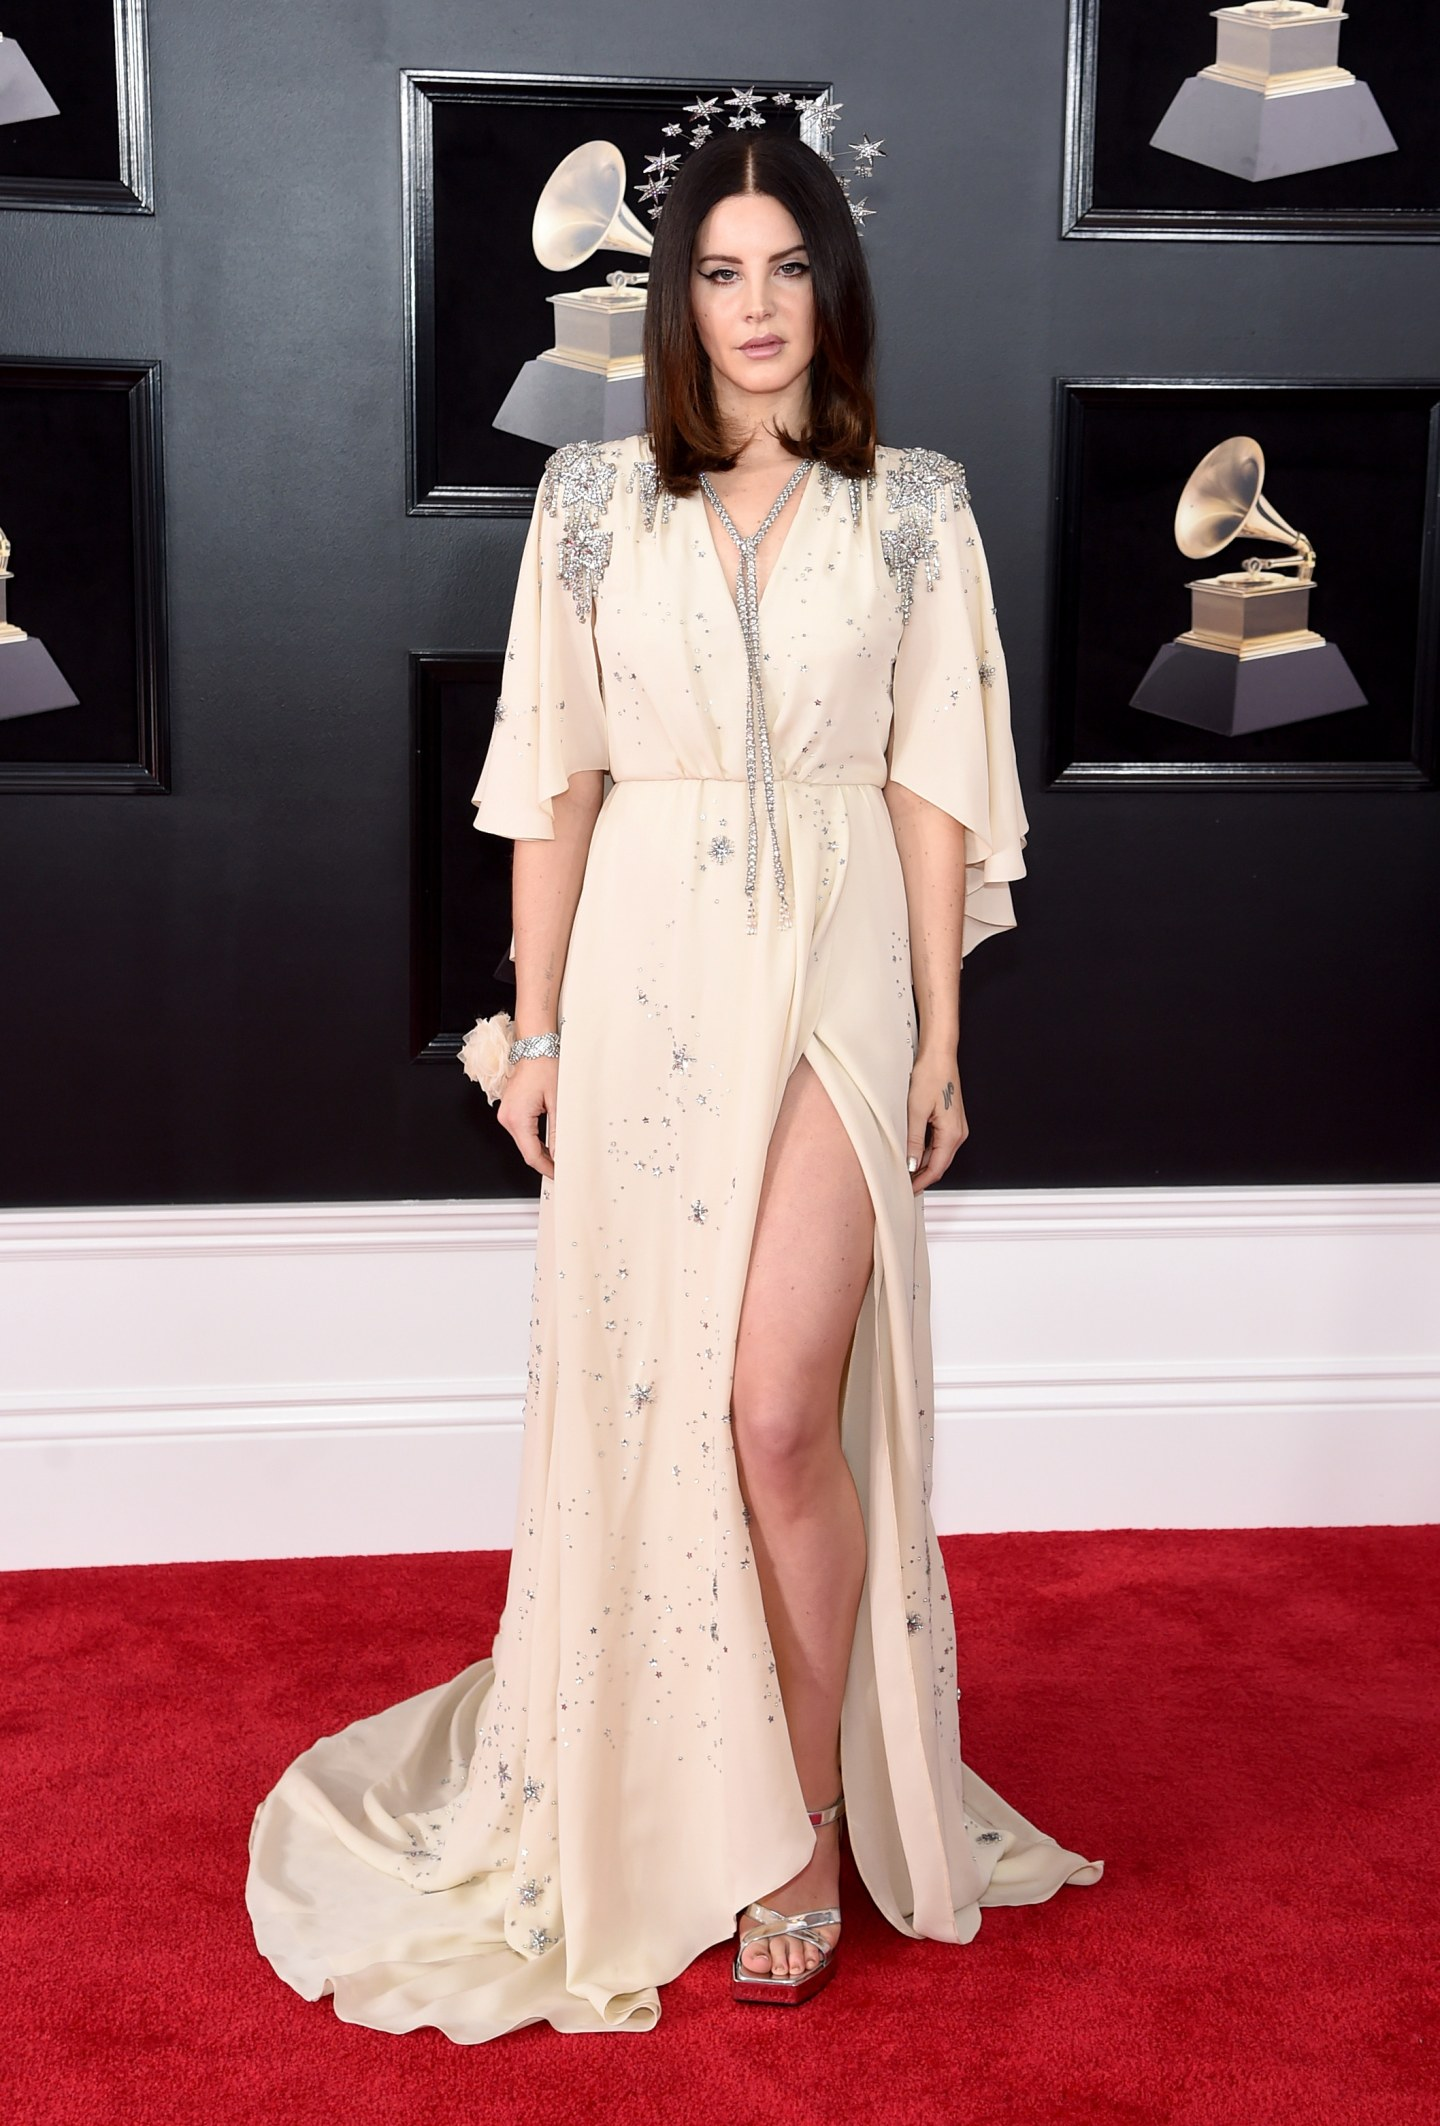 Here are all the looks you need to see from the 2018 Grammys Red Carpet